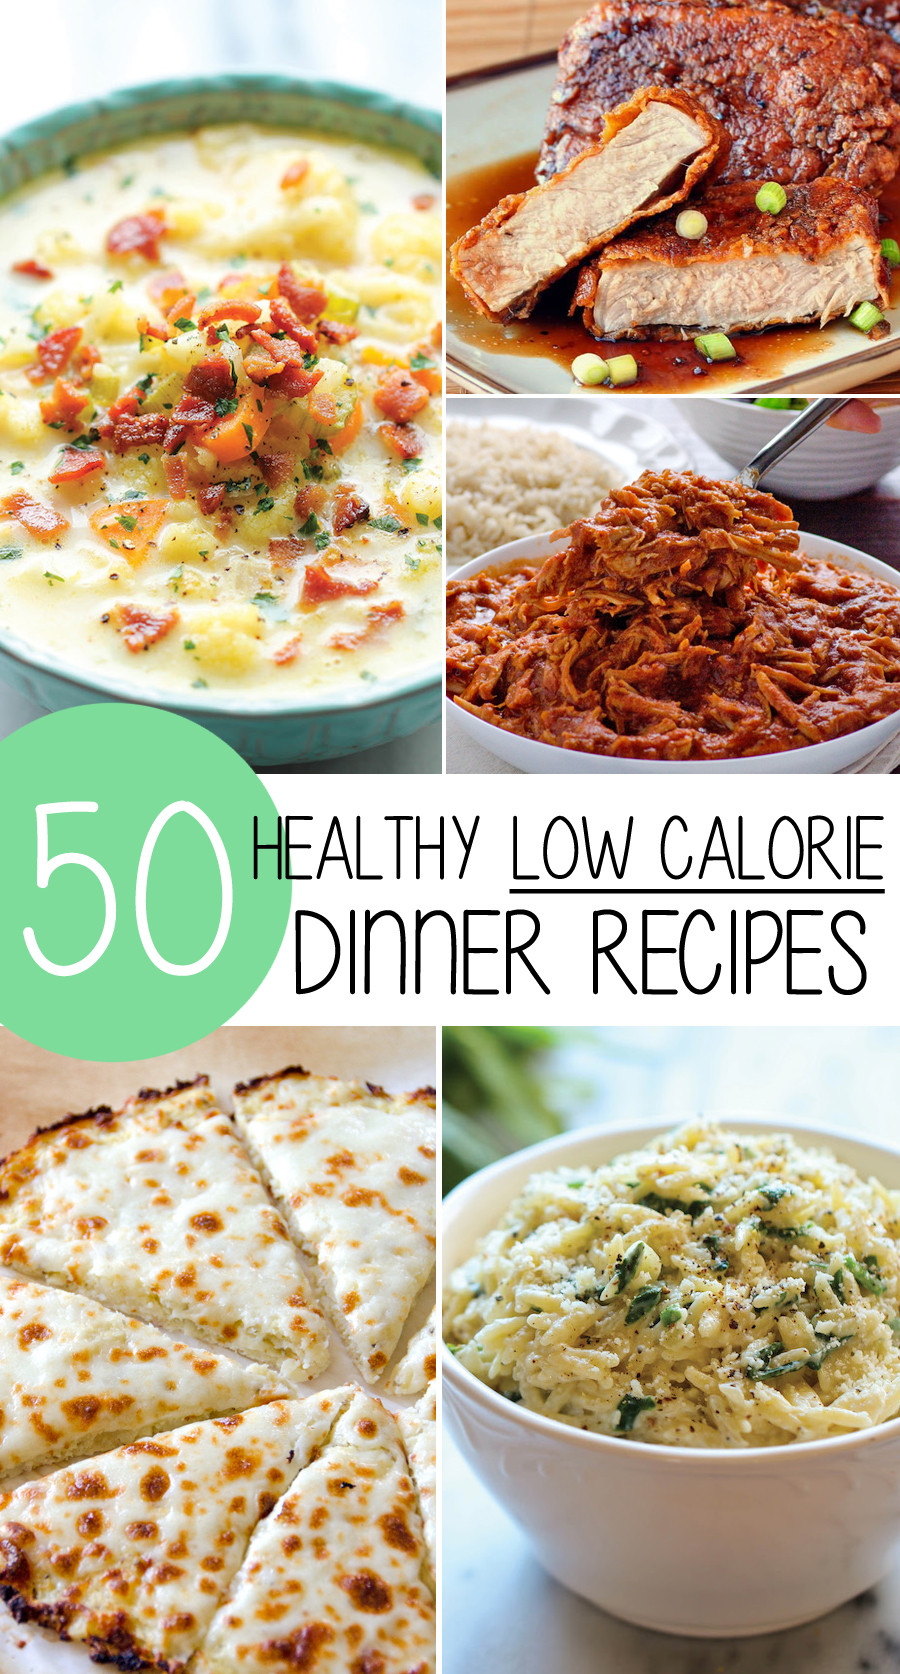 Delicious Low Calorie Recipes  50 Healthy Low Calorie Weight Loss Dinner Recipes